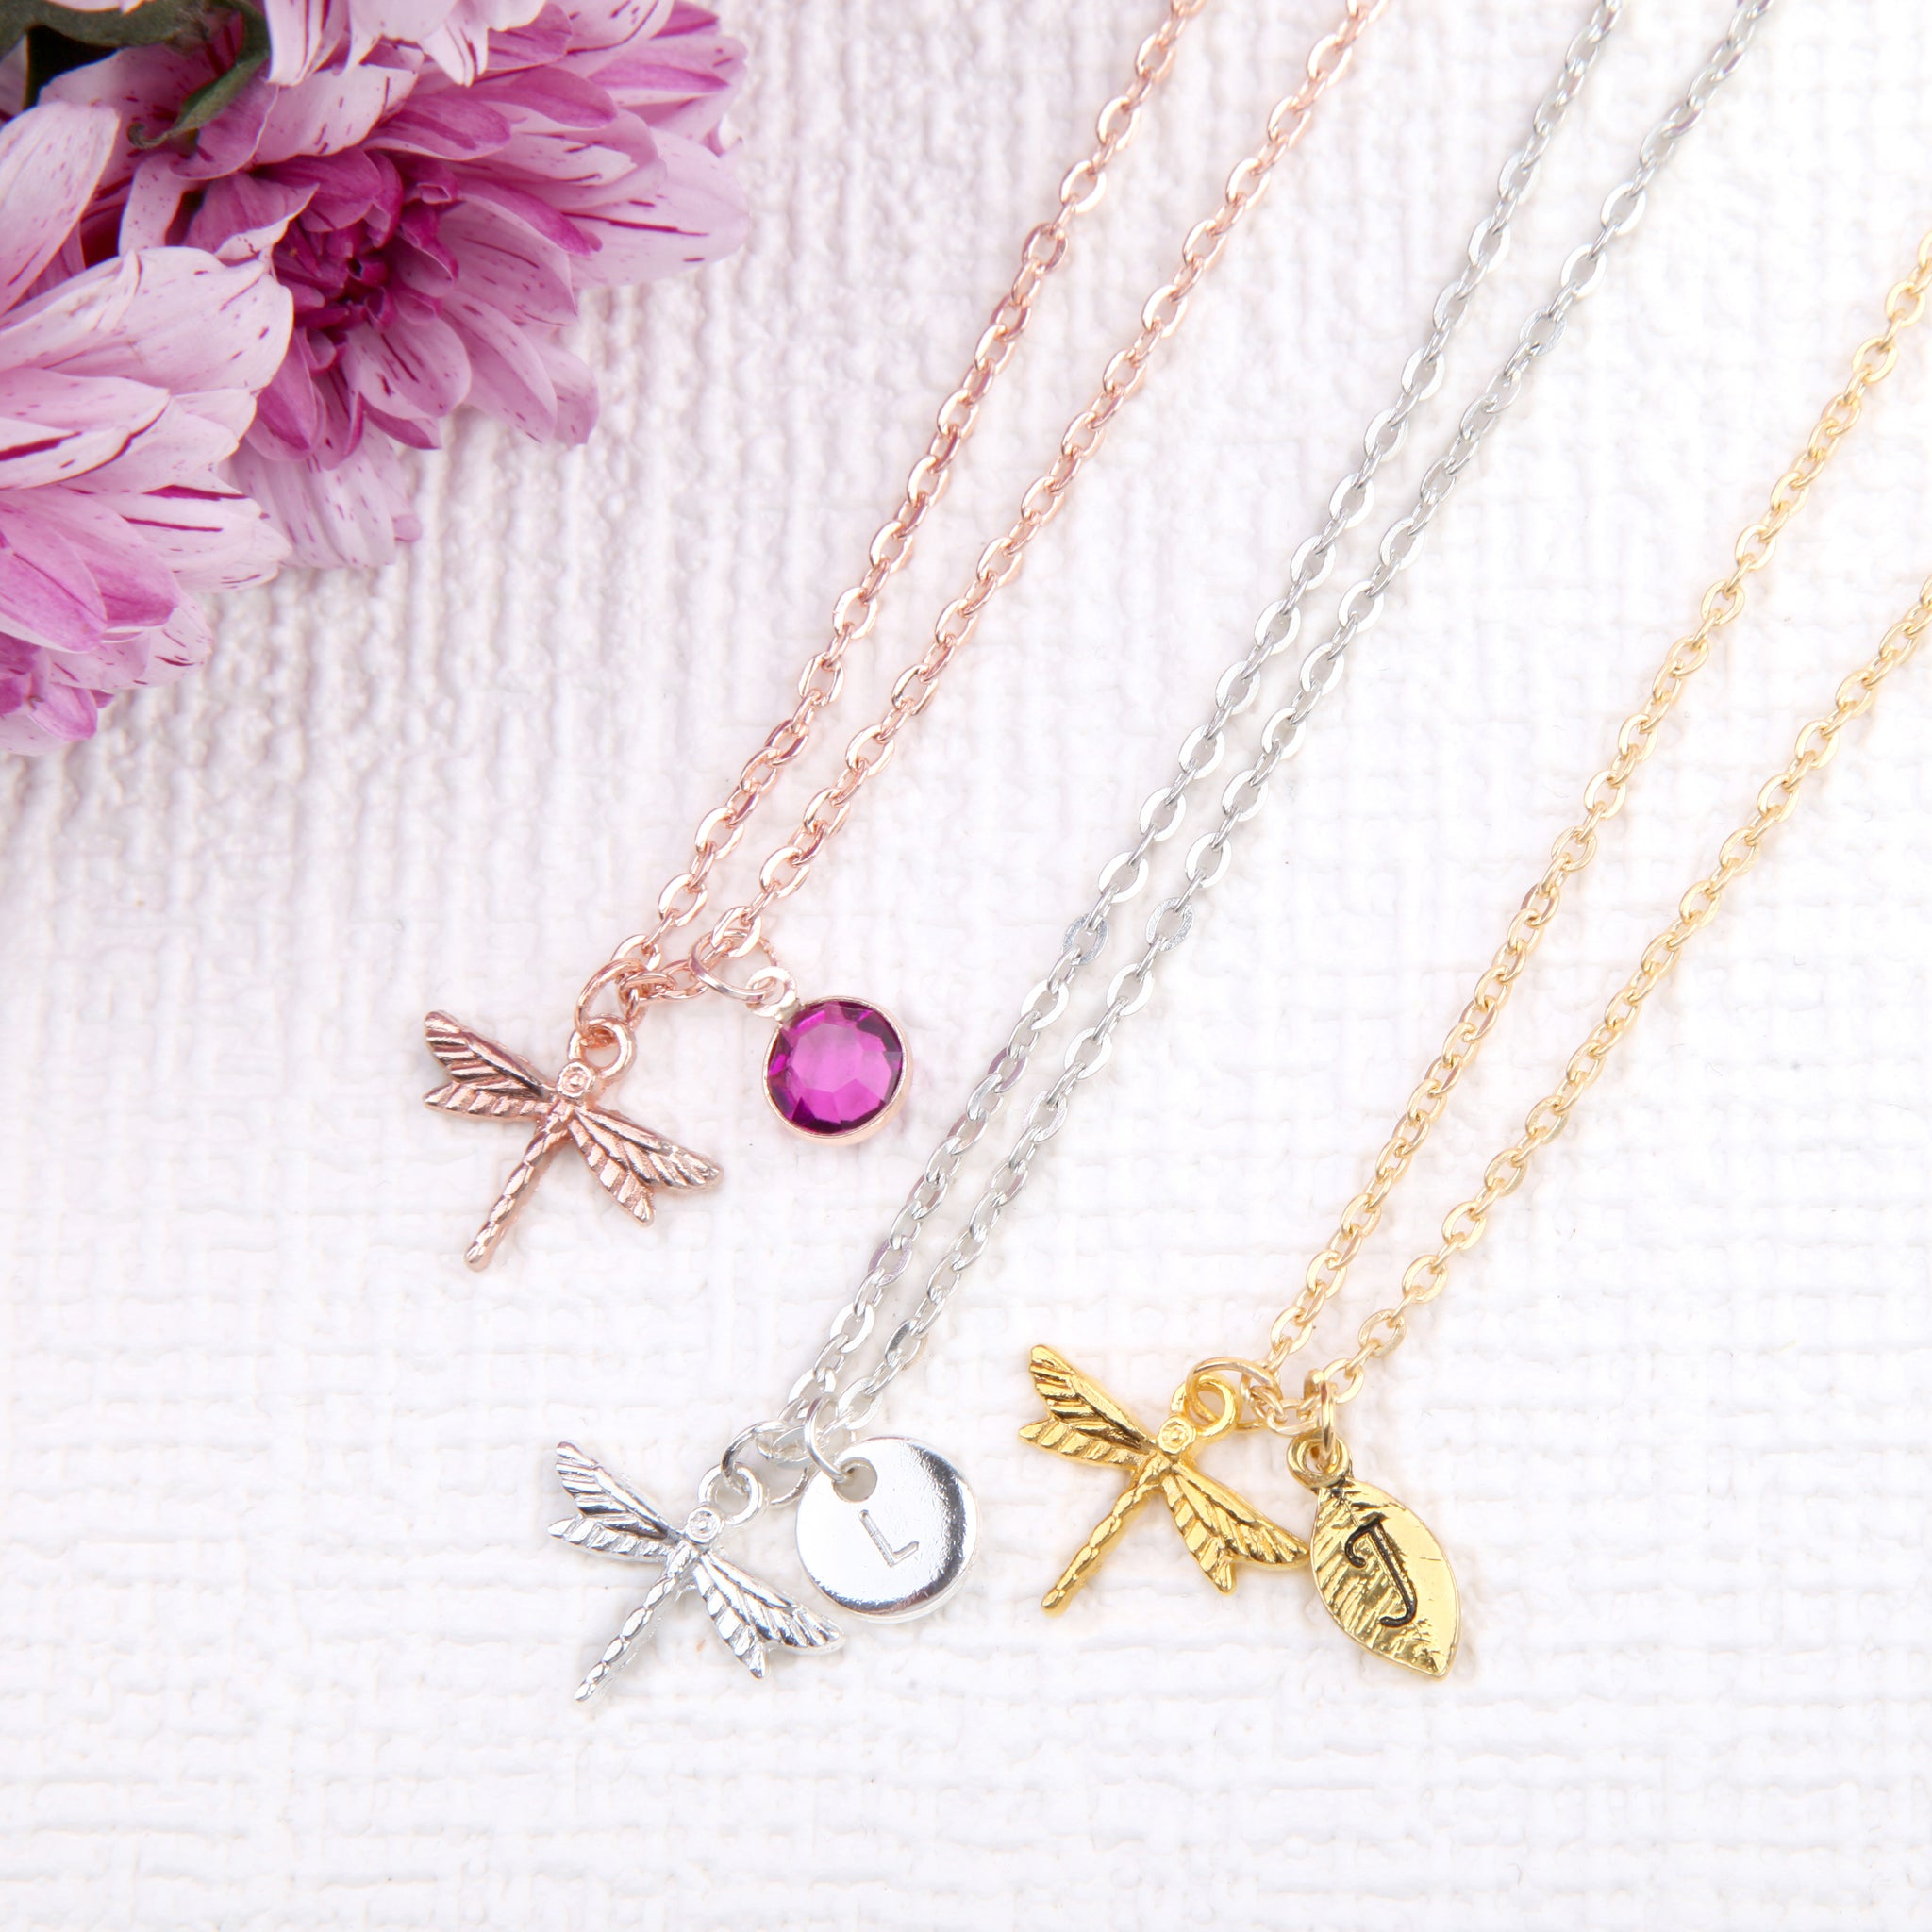 Rose gold, Gold and Silver dragonfly necklace insect woodland pendant, personalised dragon fly gifts uk - Statement Made Jewellery